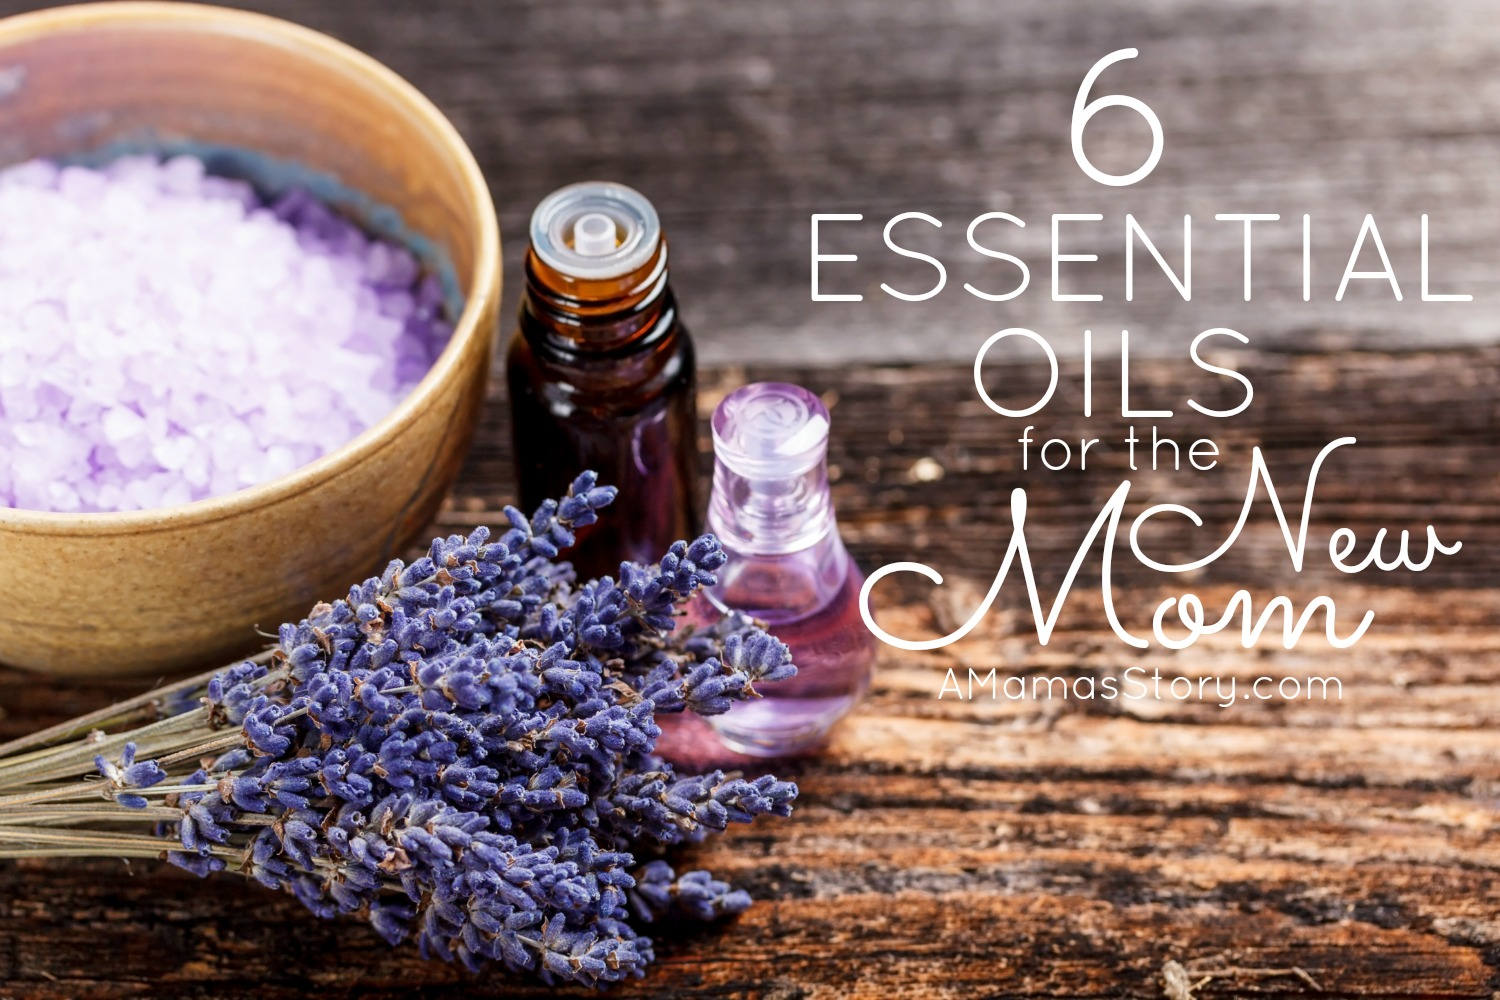 Six Essential Oils for New Moms